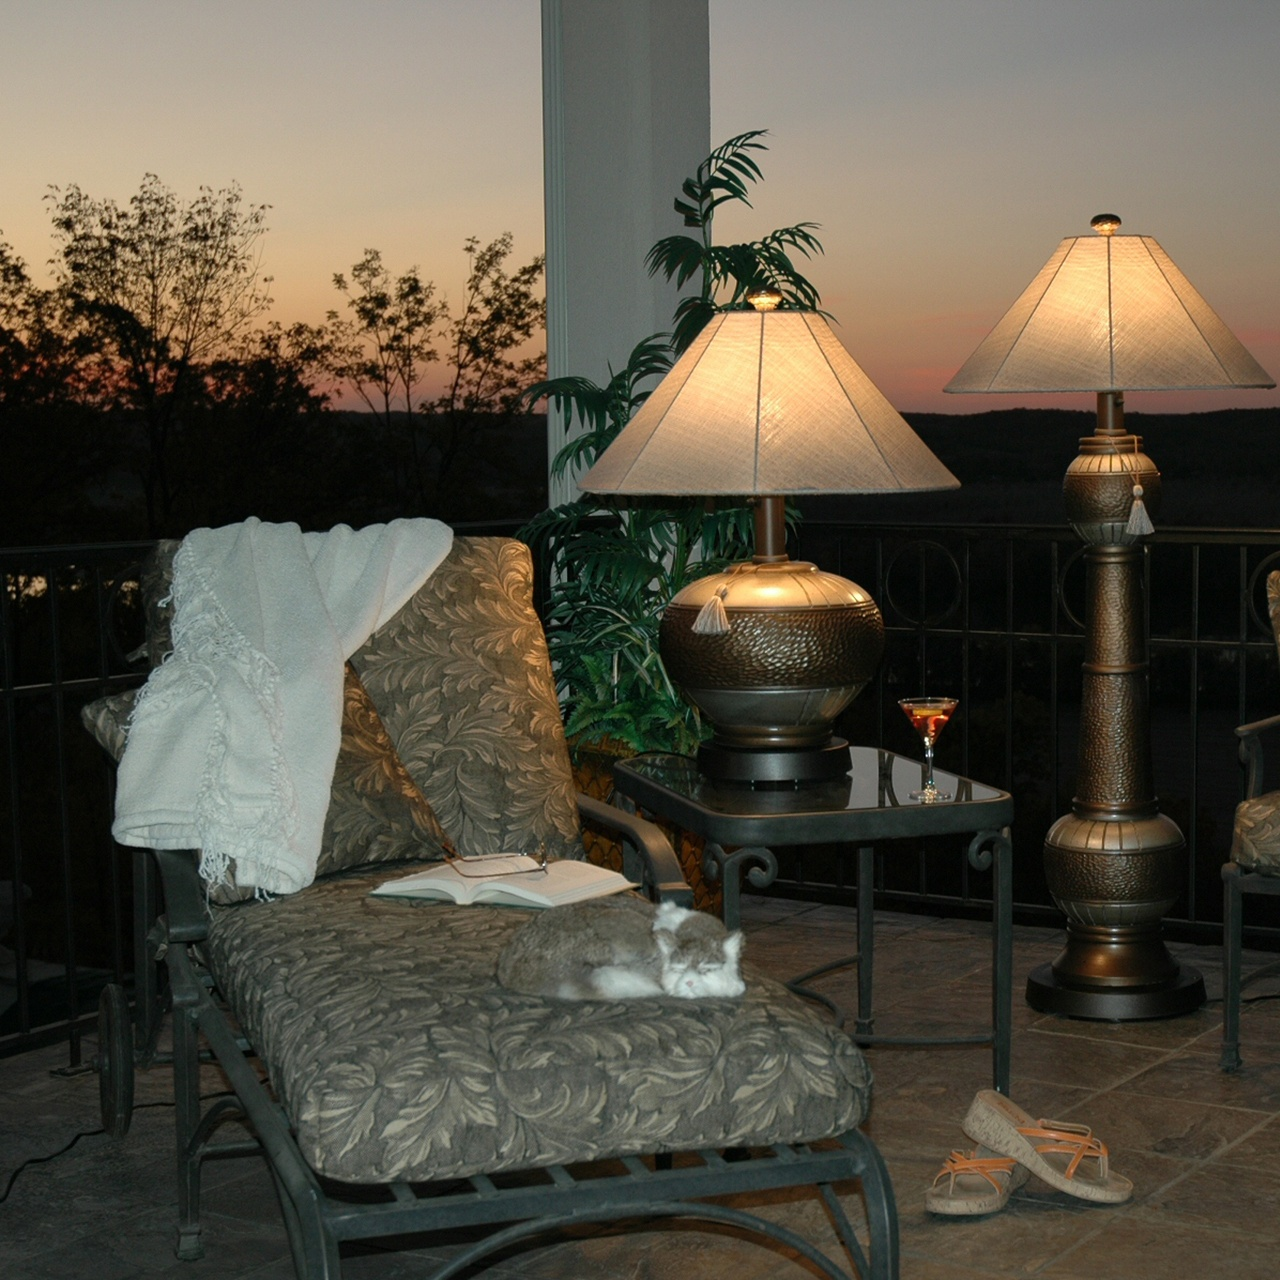 Outdoor Floor Lamps at Casual Creations